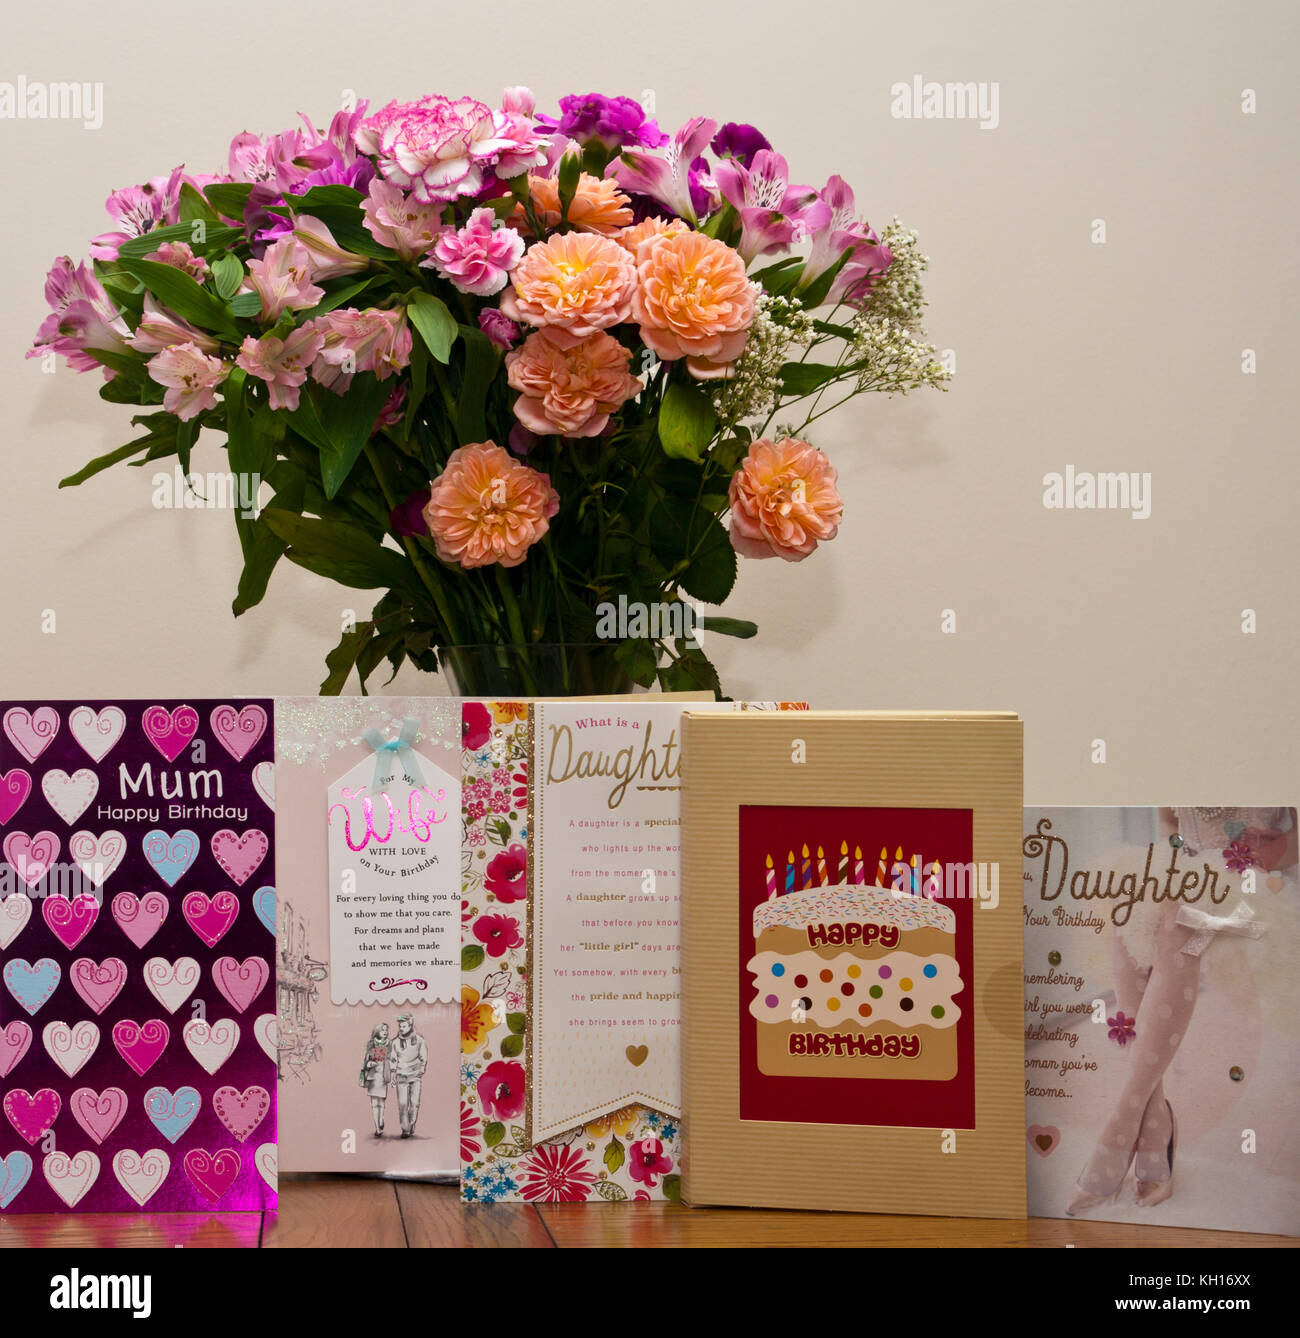 Birthday cards stock photos birthday cards stock images alamy birthday cards with a bunch of flowers in a vase stock image izmirmasajfo Choice Image